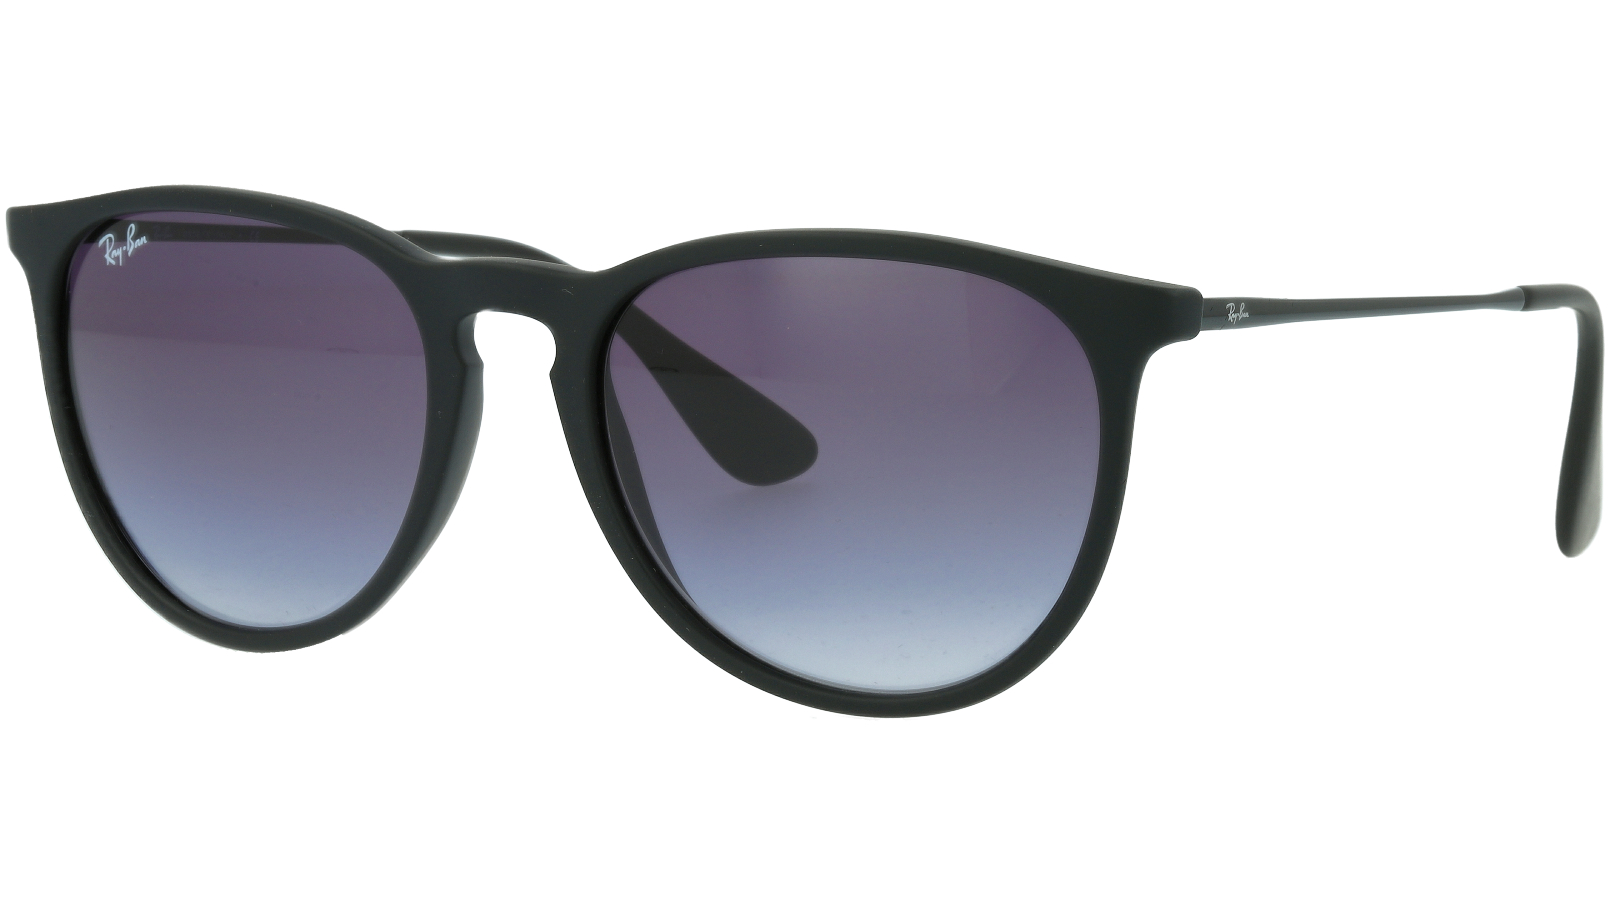 Ray-Ban RB4171 622/8G 54 RUBBER Sunglasses